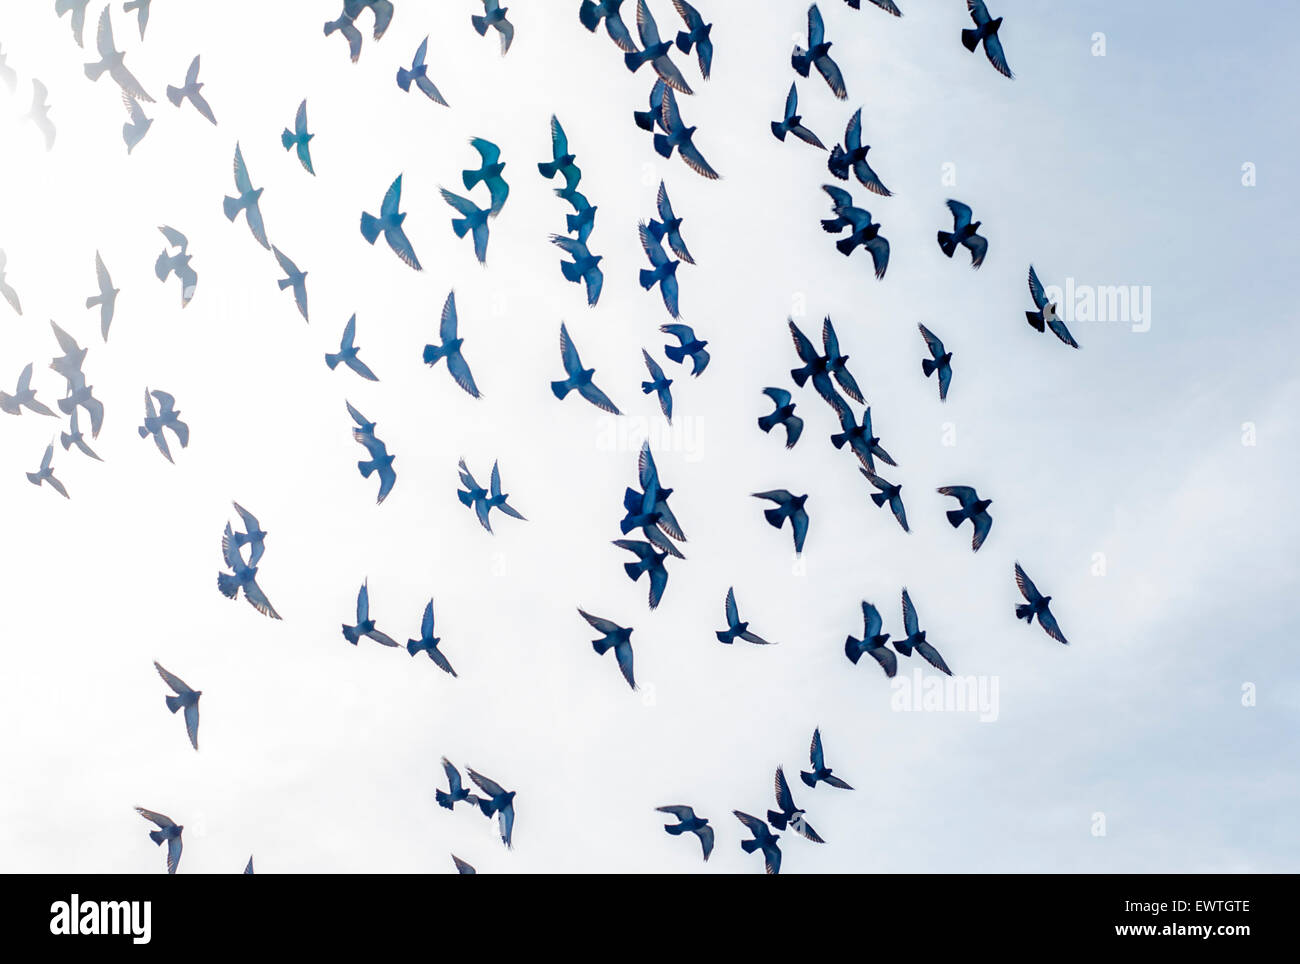 Birds flying in the sun in La Jolla, California - Stock Image